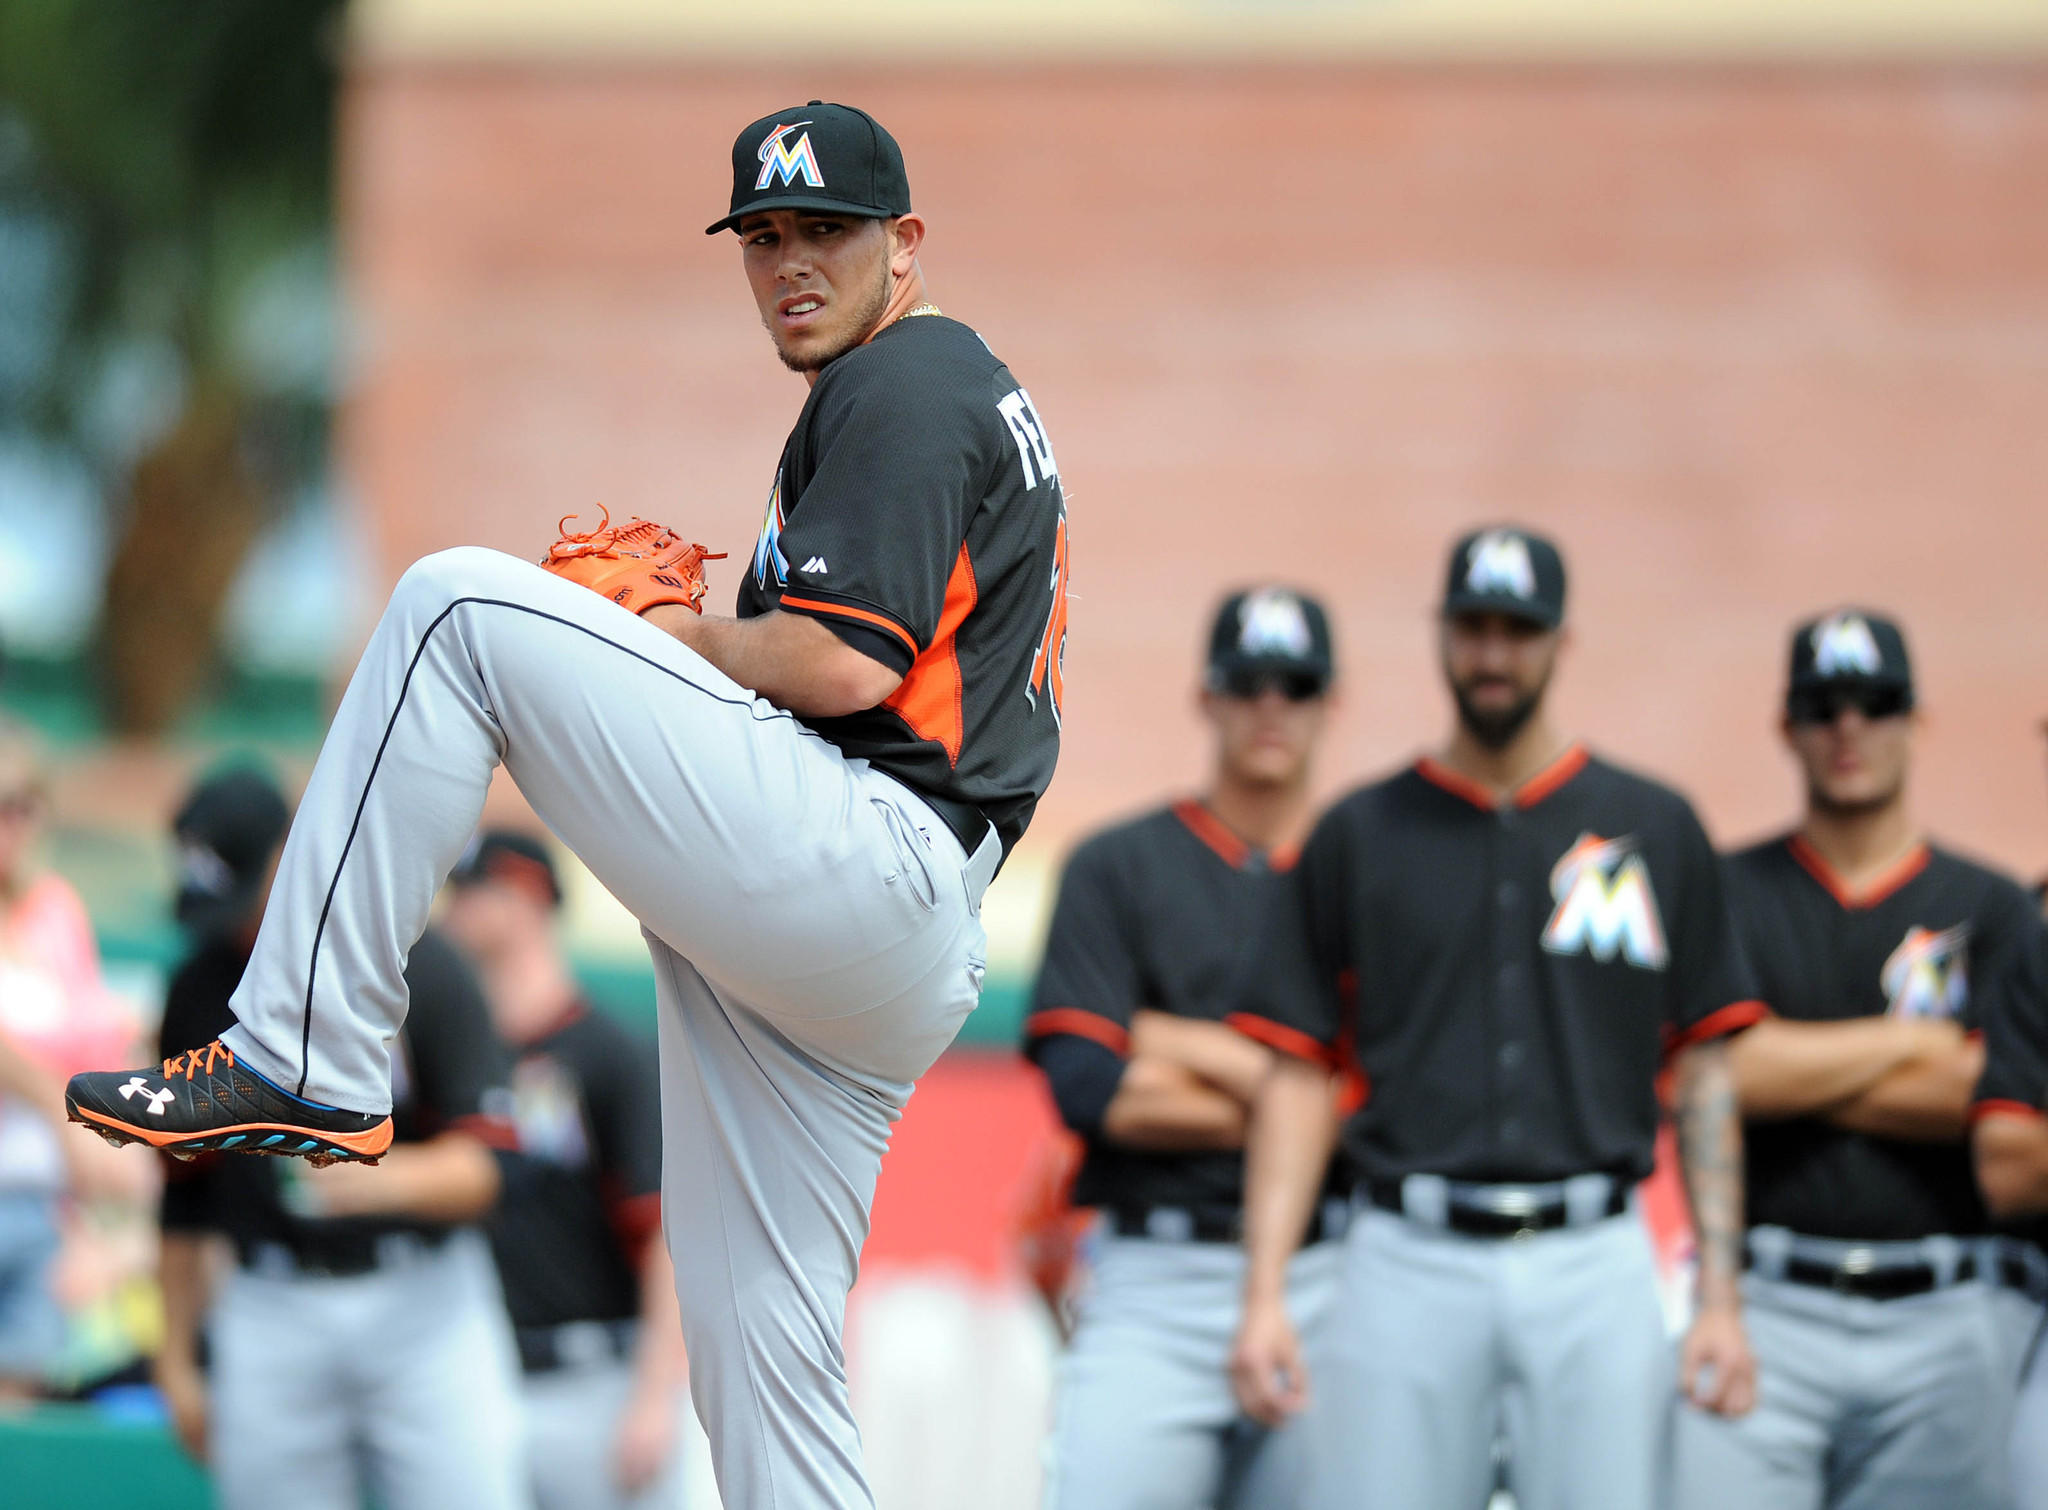 Miami Marlins starting pitcher Jose Fernandez (16) warms up in the bullpen before a spring training game against the St. Louis Cardinals at Roger Dean Stadium.